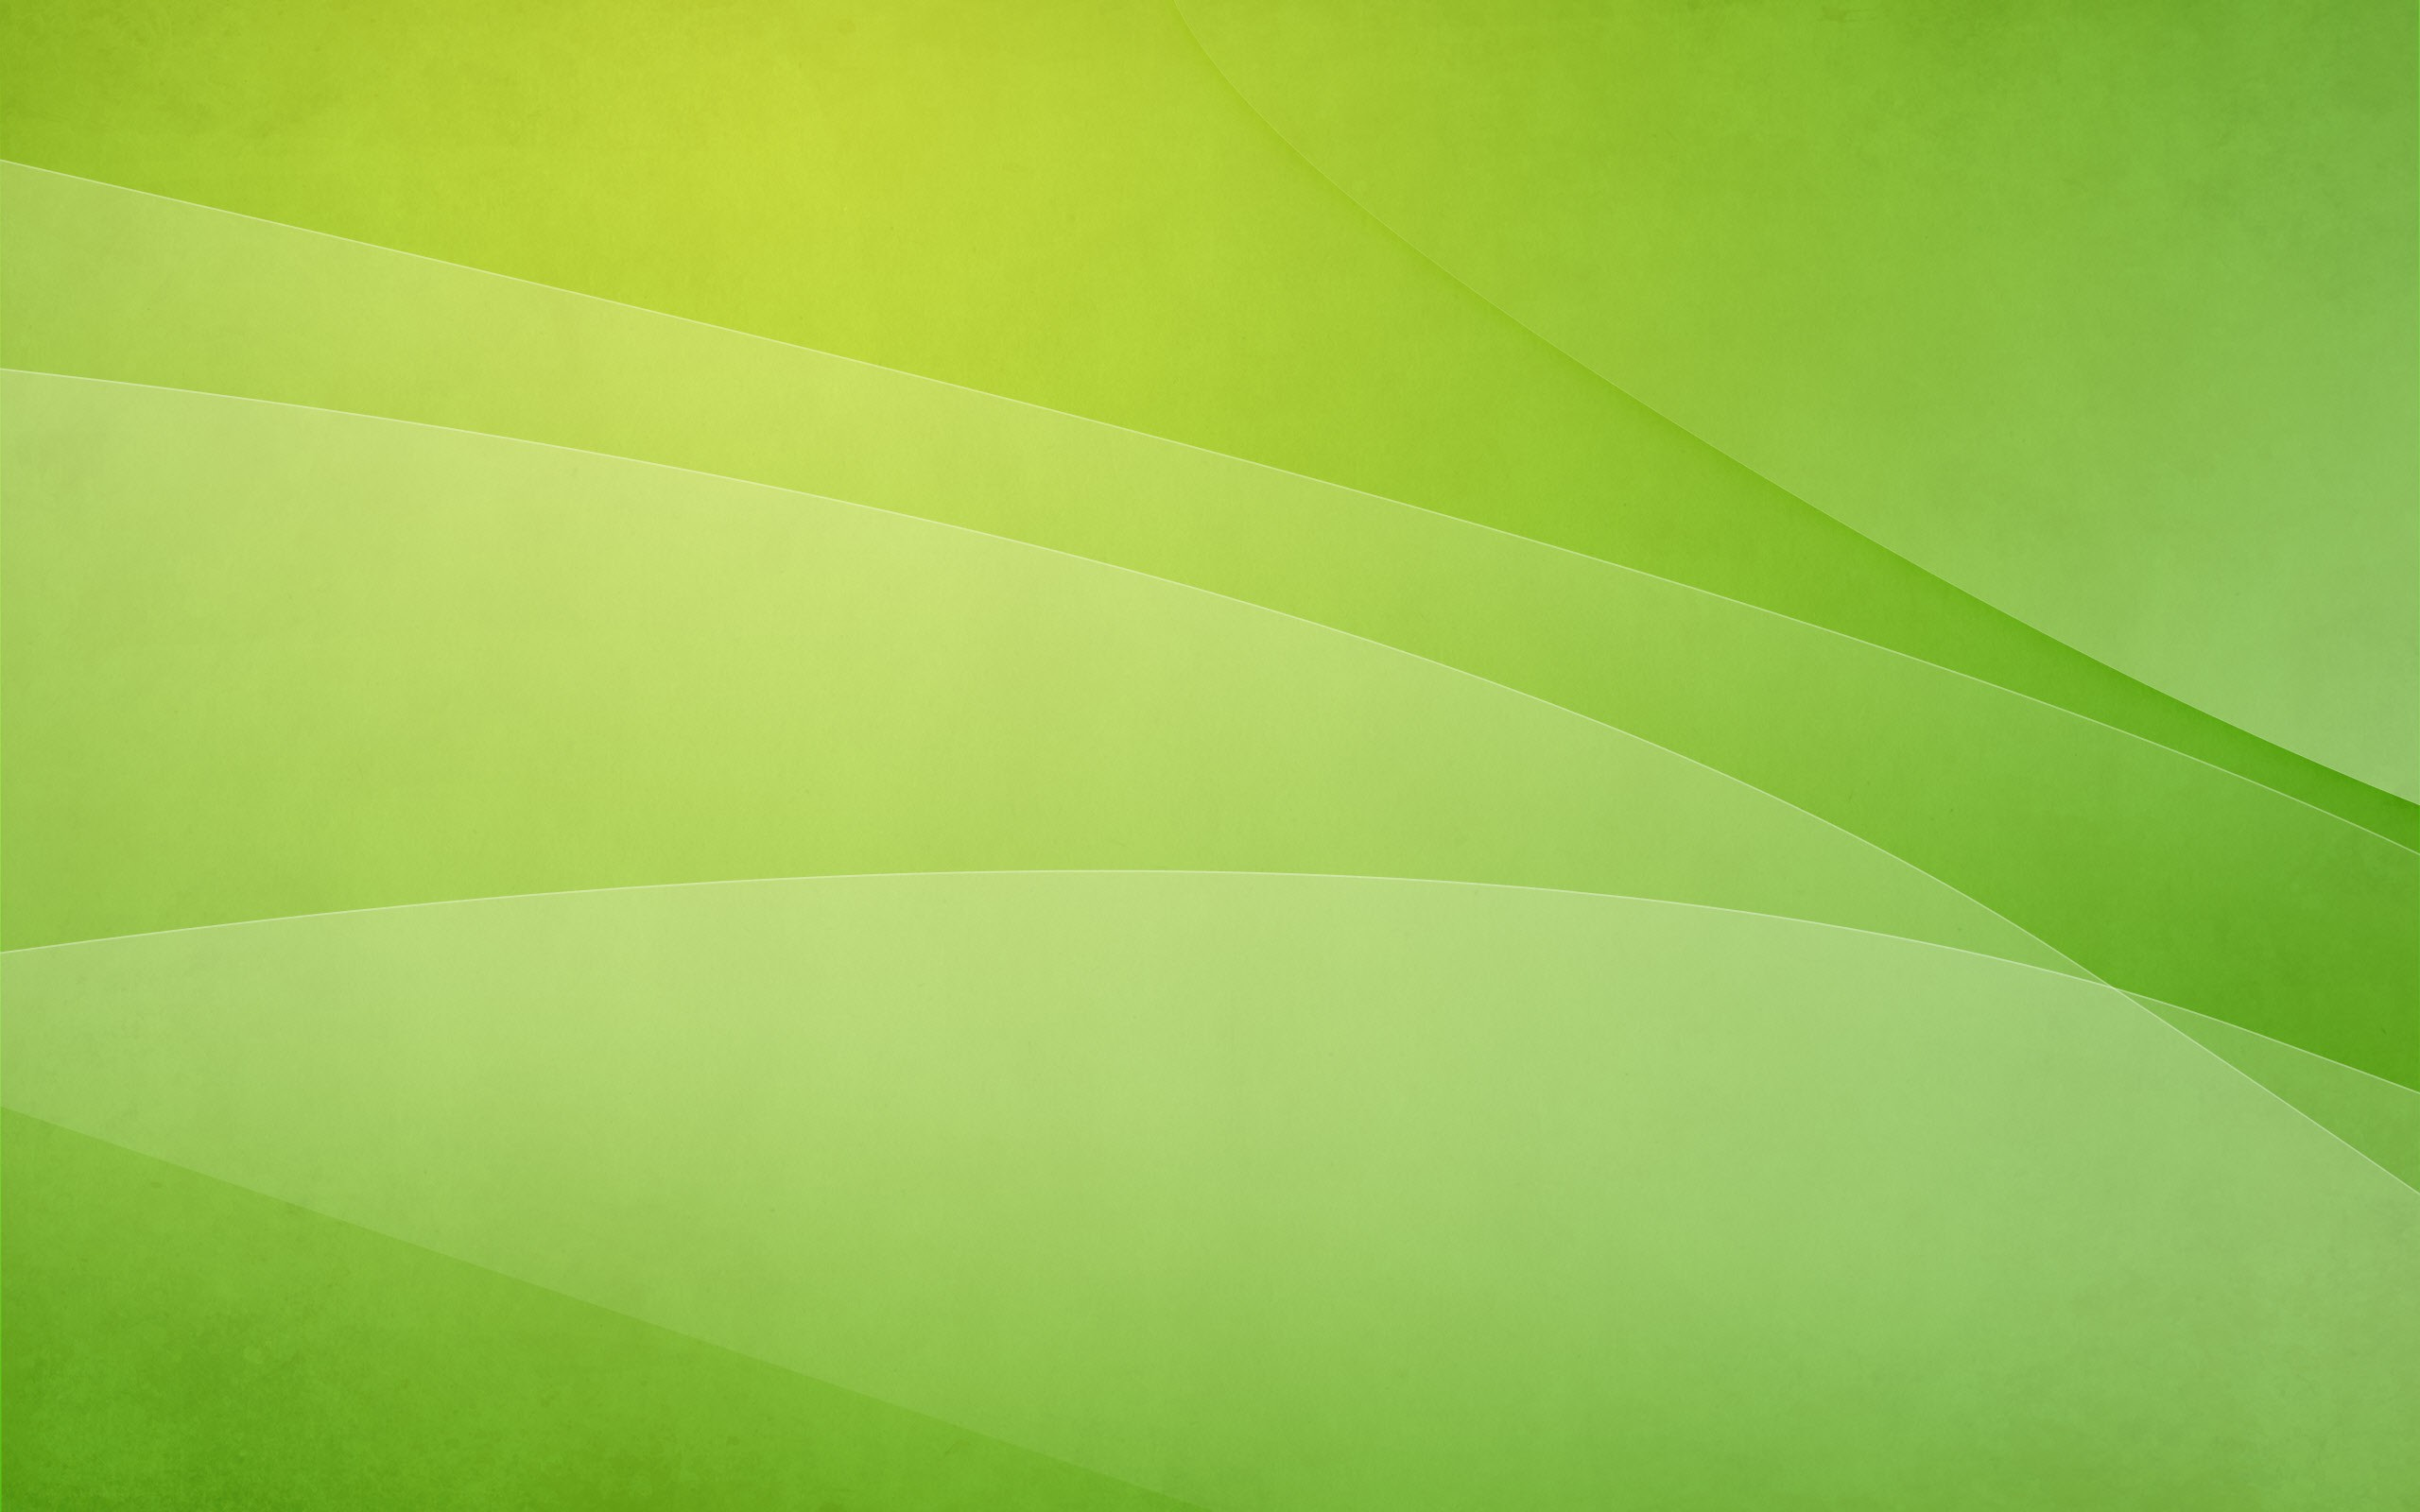 Lime Green Background ① Download Free Full Hd Wallpapers For